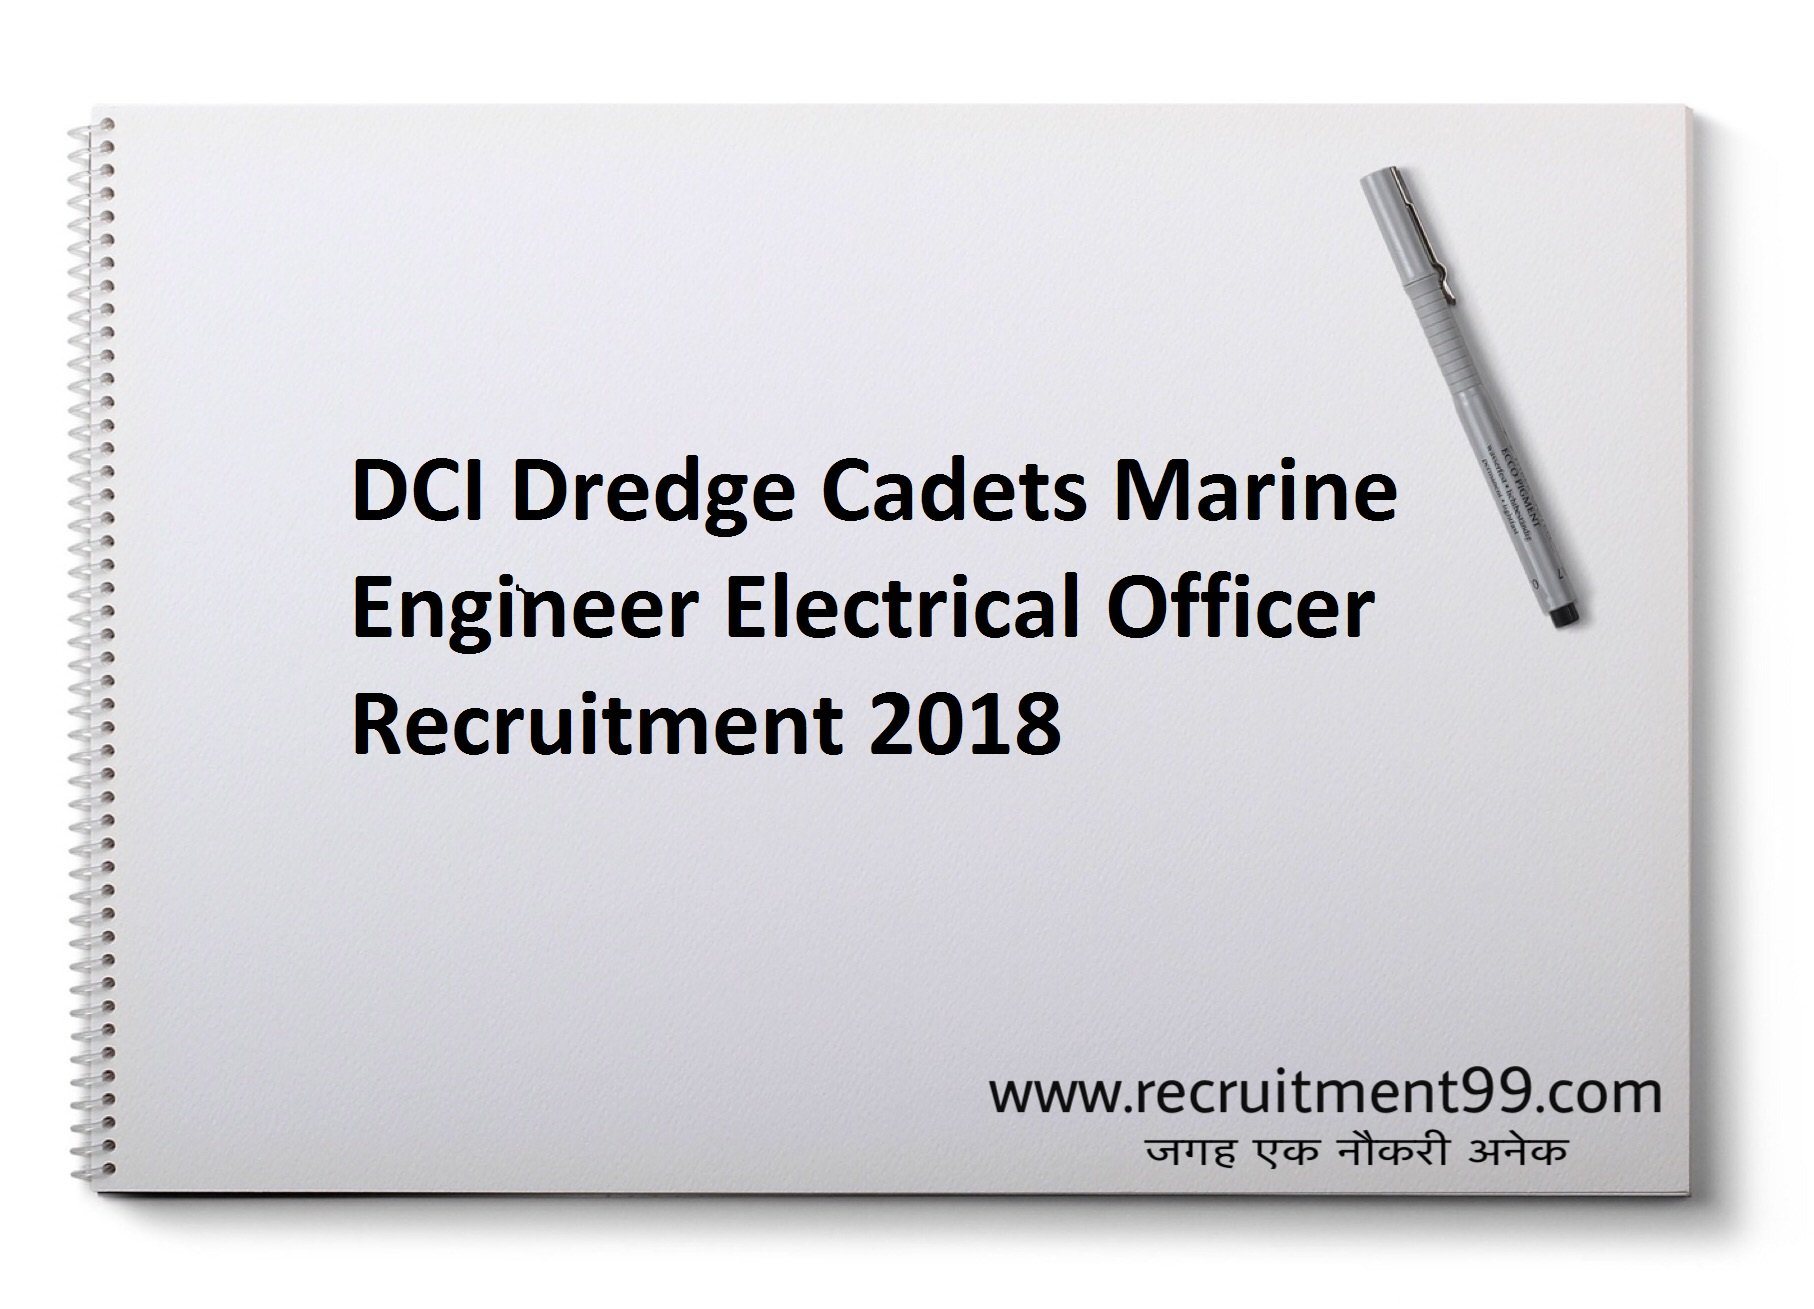 DCI Dredge Cadets Marine Engineer Electrical Officer Recruitment Admit Card Result 2018